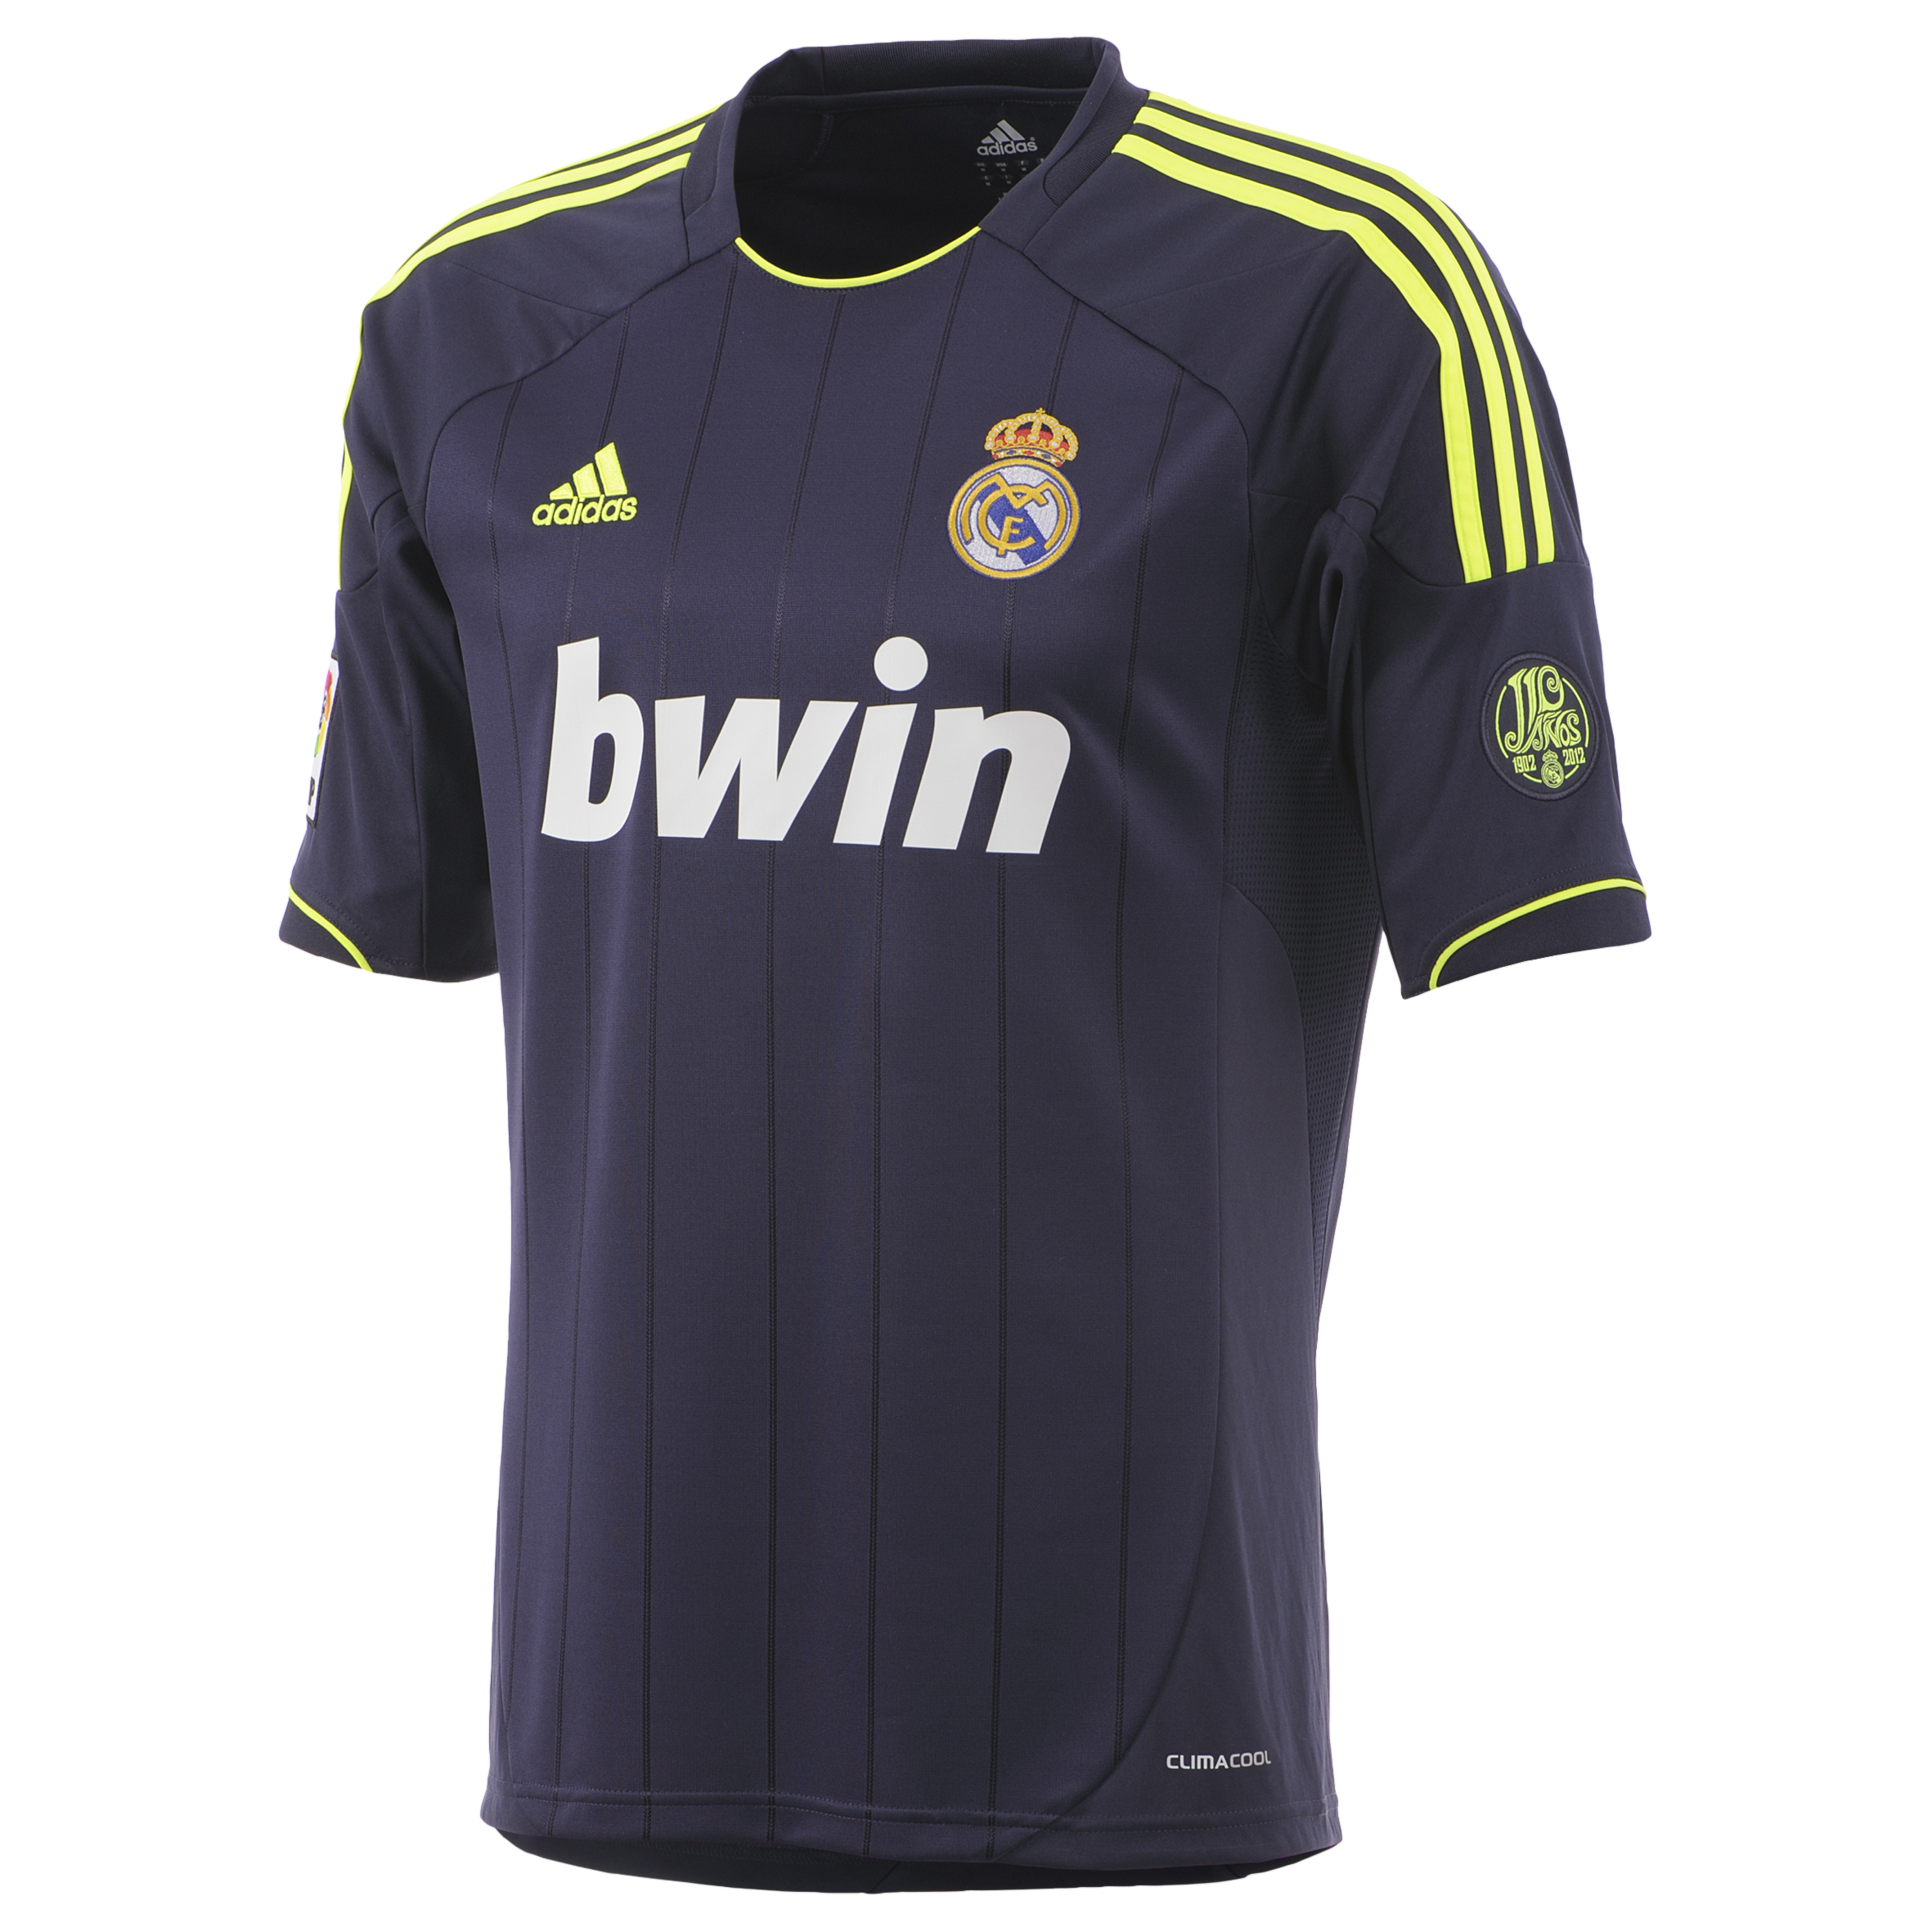 Camiseta visitante Real Madrid 2012/13 - Niño